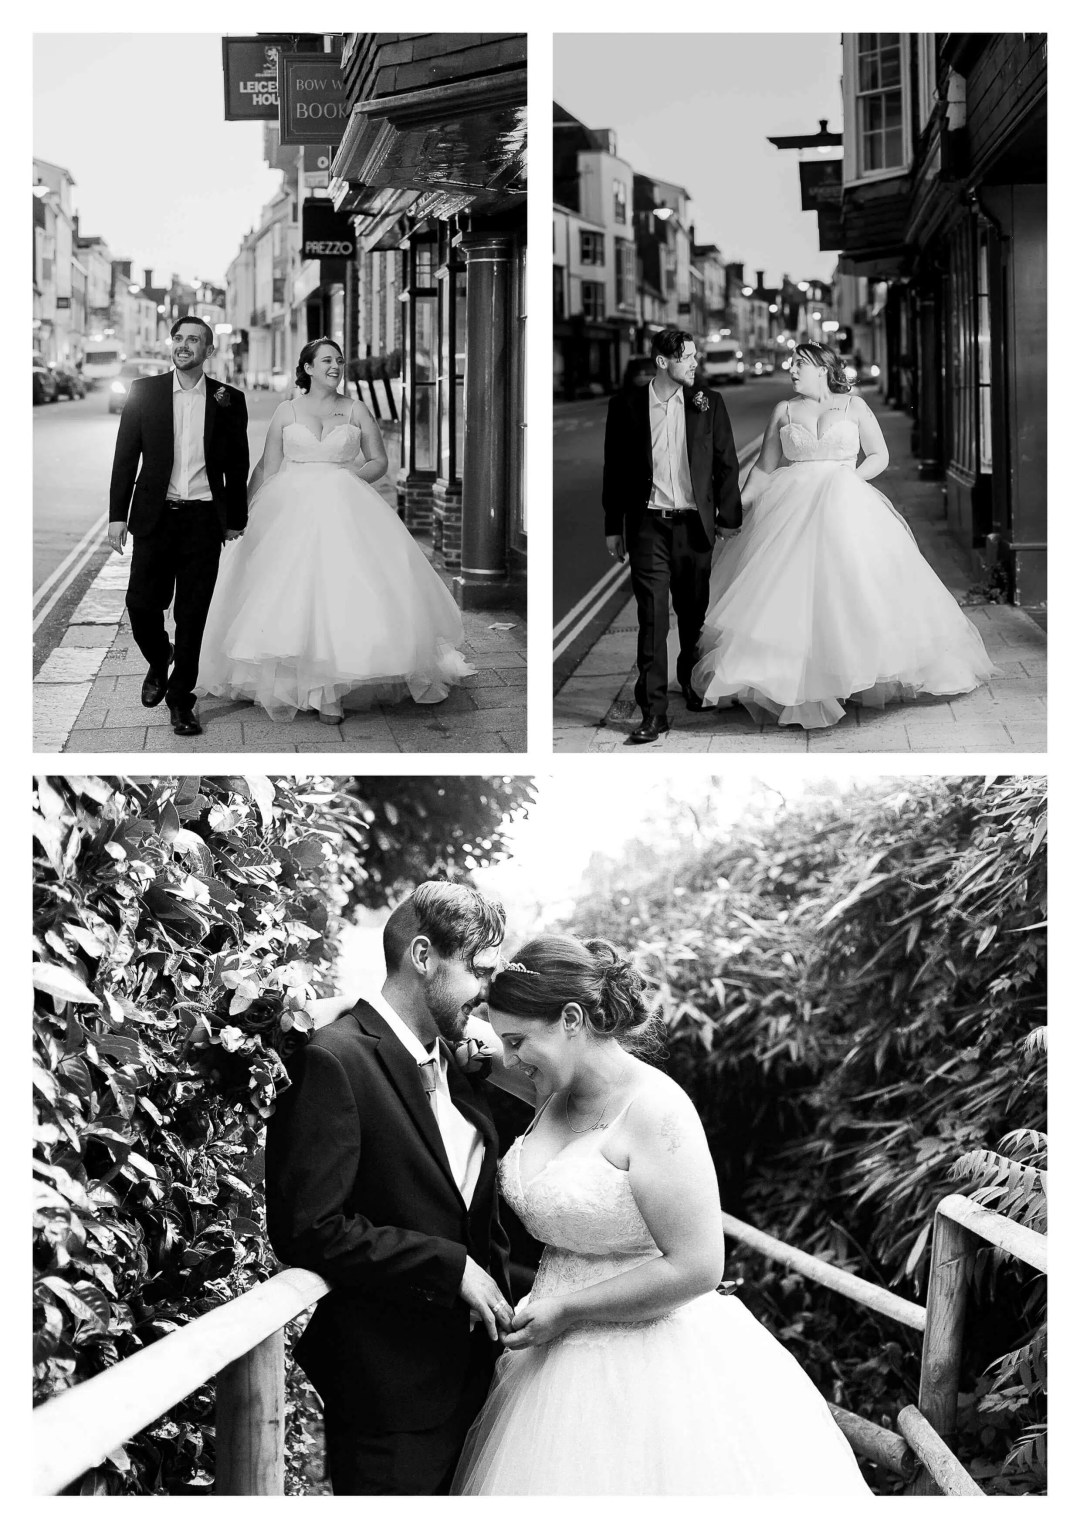 Lewes High Street Wedding Couple Portraits | Brighton Photographer